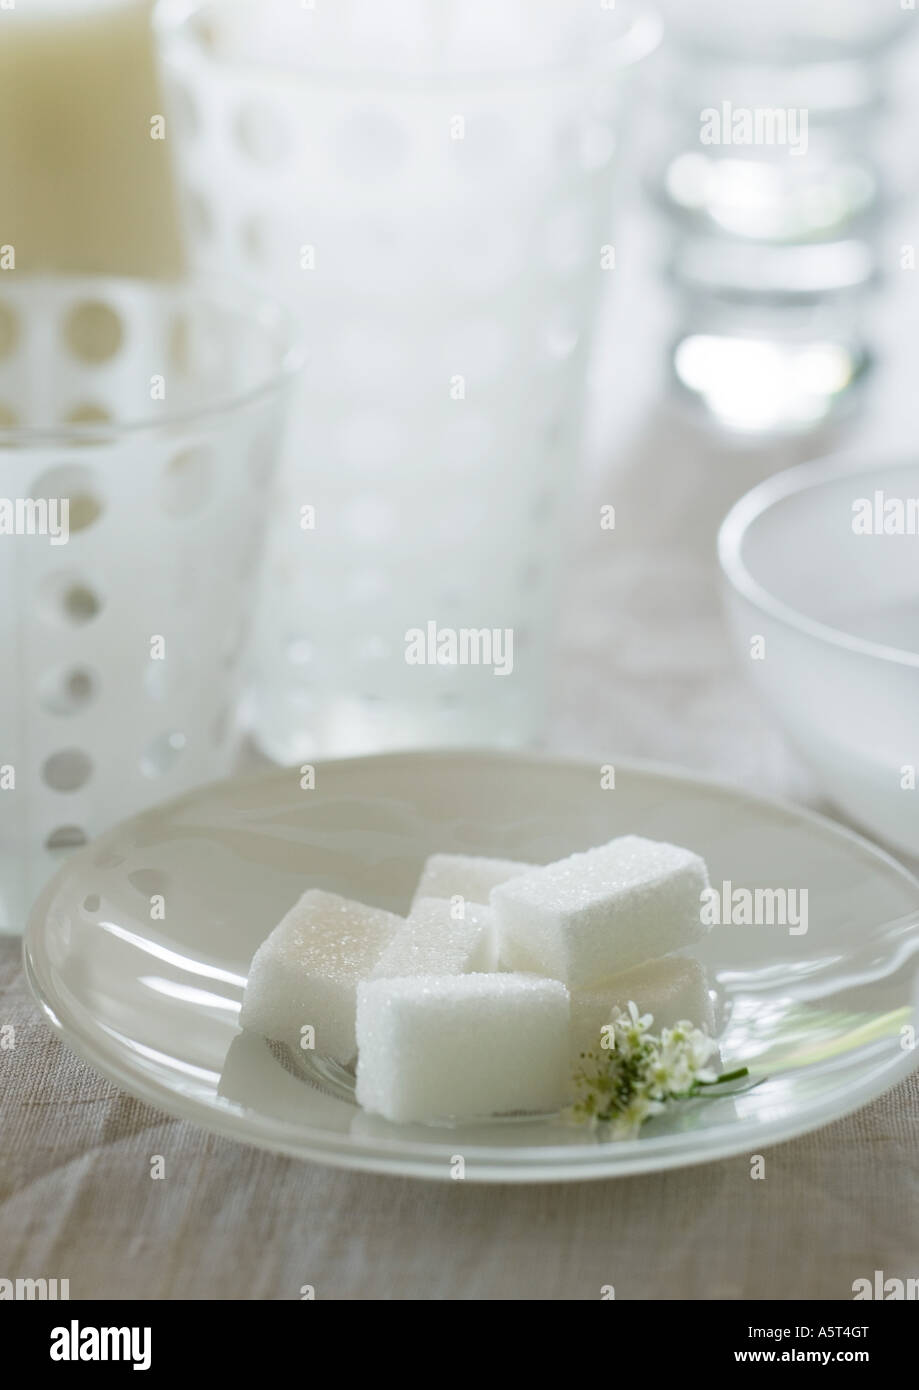 Sugar cubes in saucer - Stock Image